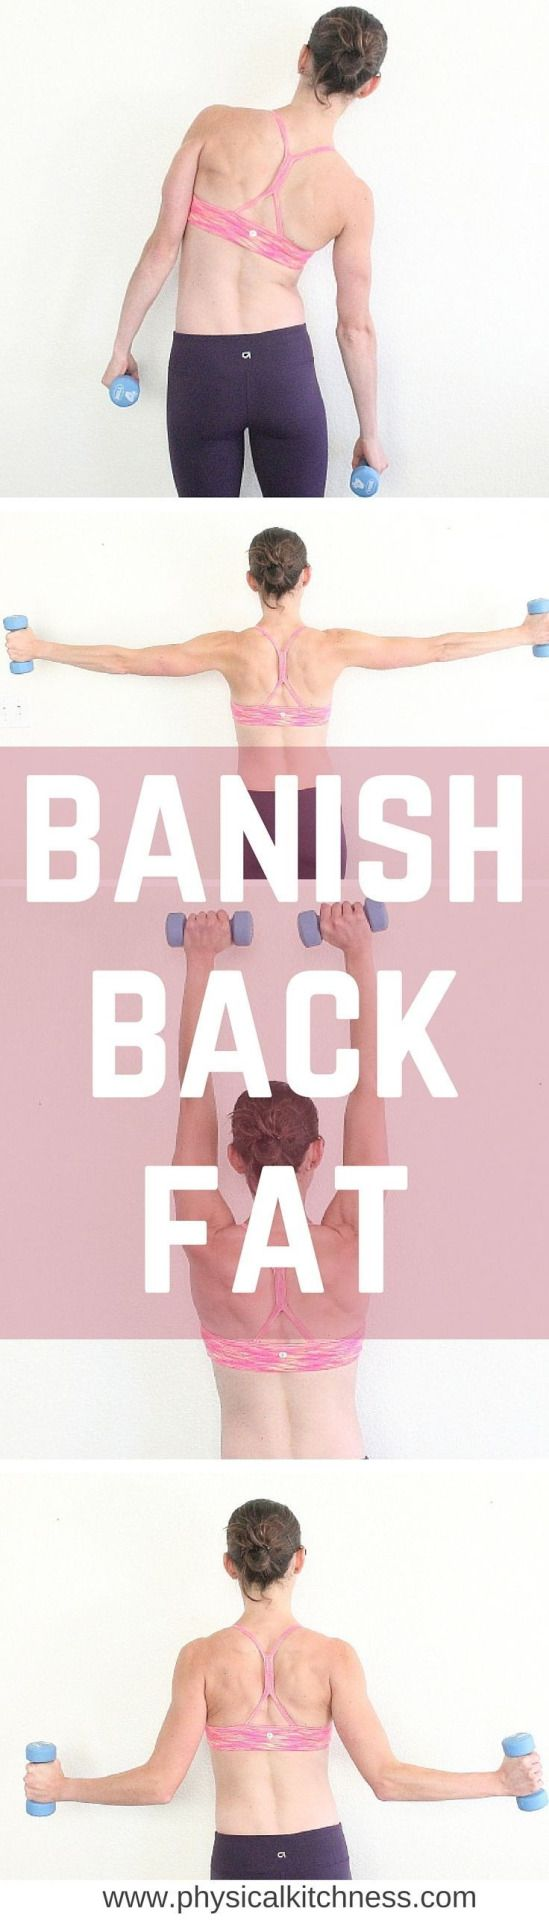 Andrew Bennett enjoys exploring health and fitness through his personal workouts together with researching the latest about the topic. Some diets nowadays like Strip That Excess fat work off the principle that to lose weight you must burn more calories fr